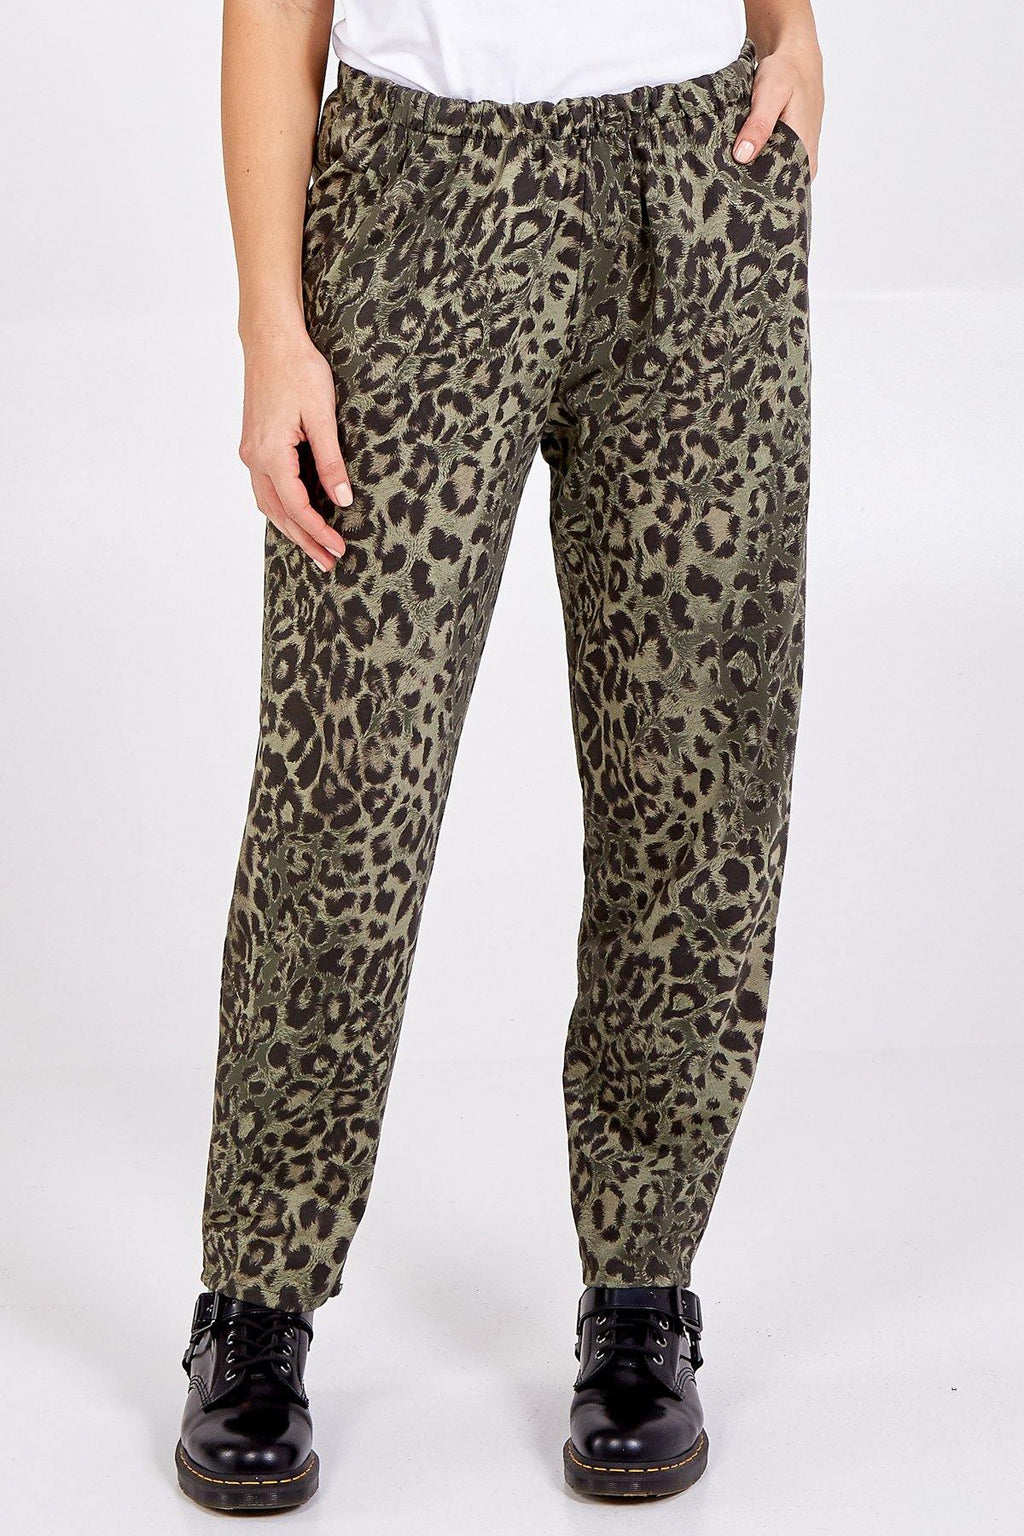 Relaxed Leopard Print Trousers freeshipping - herfreespirit